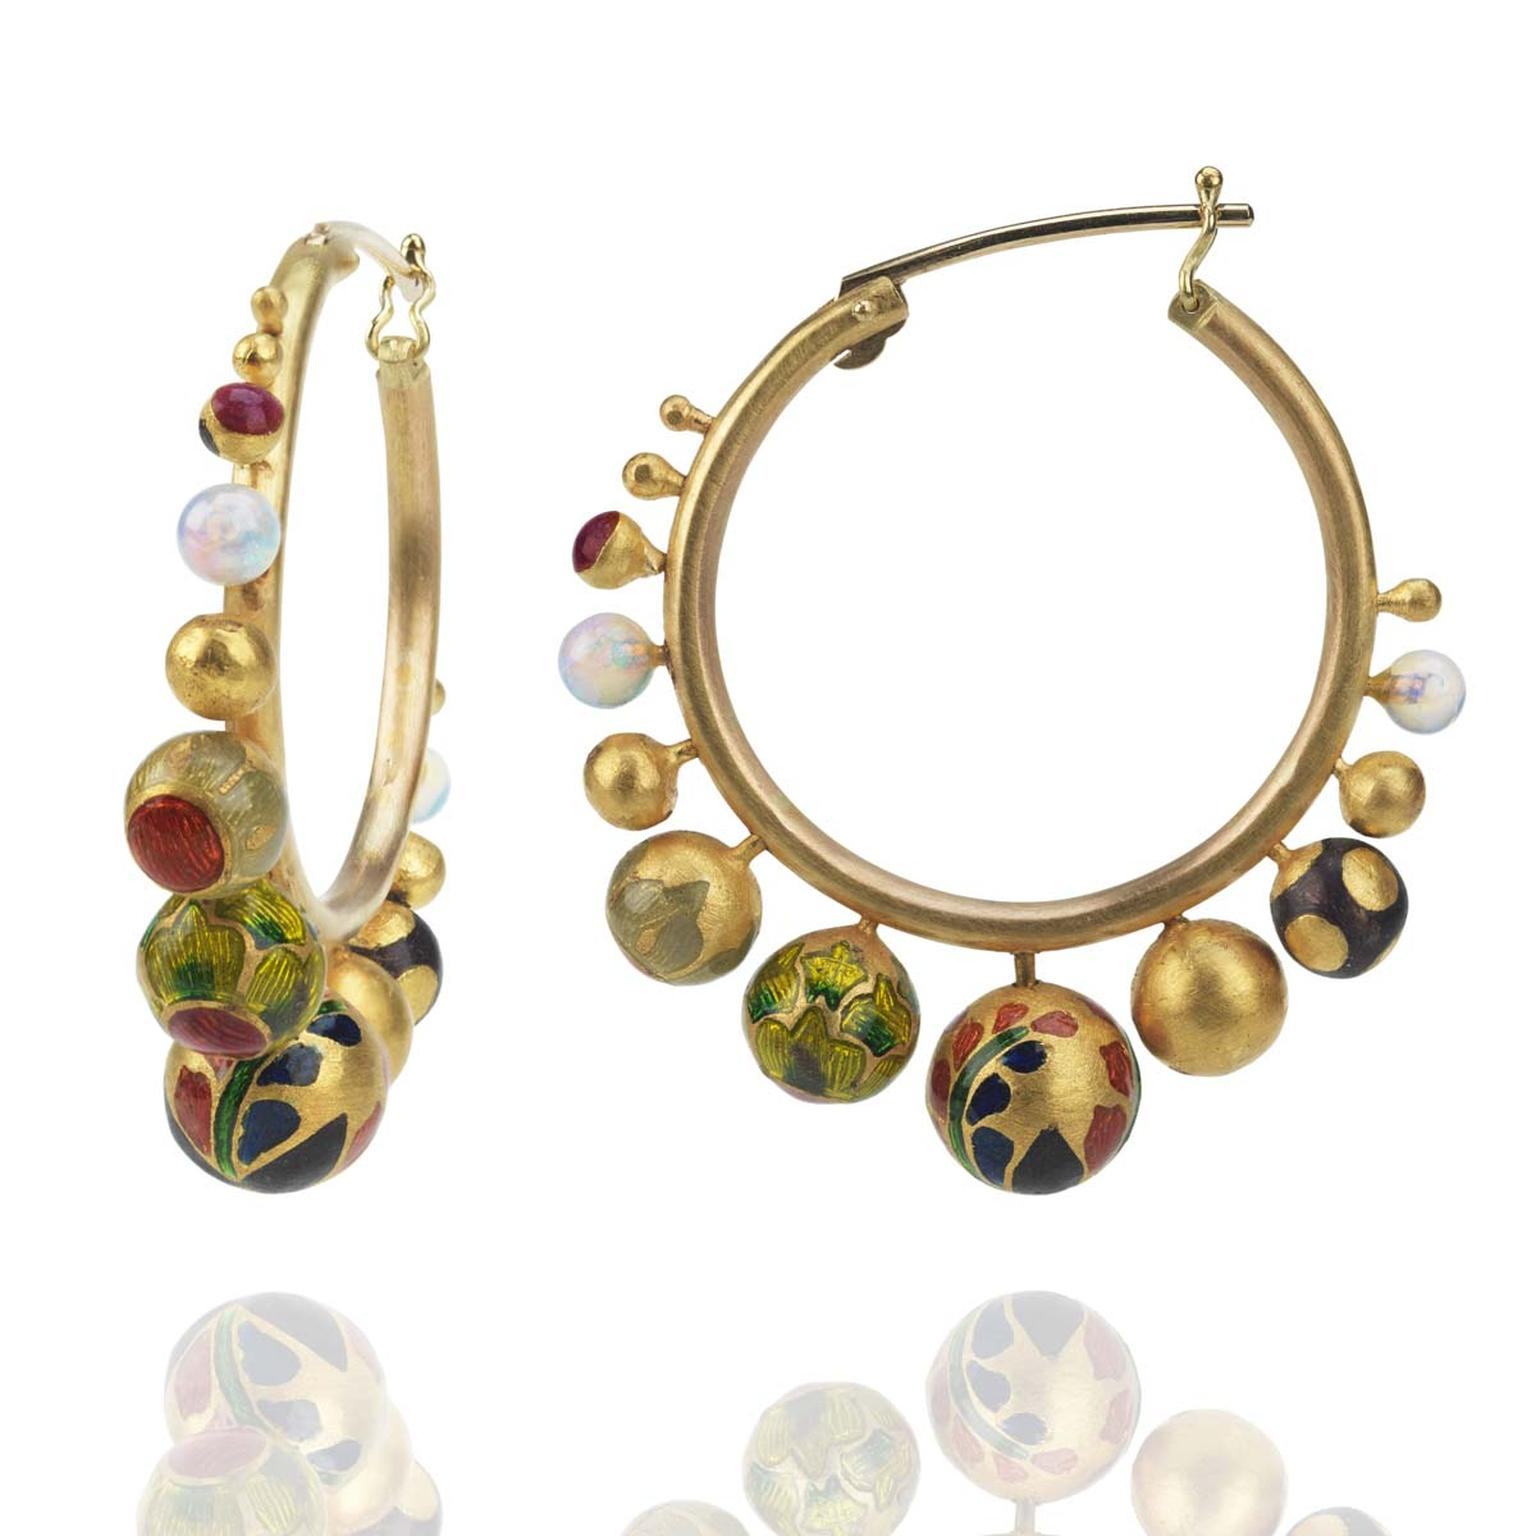 Alice Cicolini Kimono Hoop earrings in yellow gold with white opals and vitreous enamel spheres.